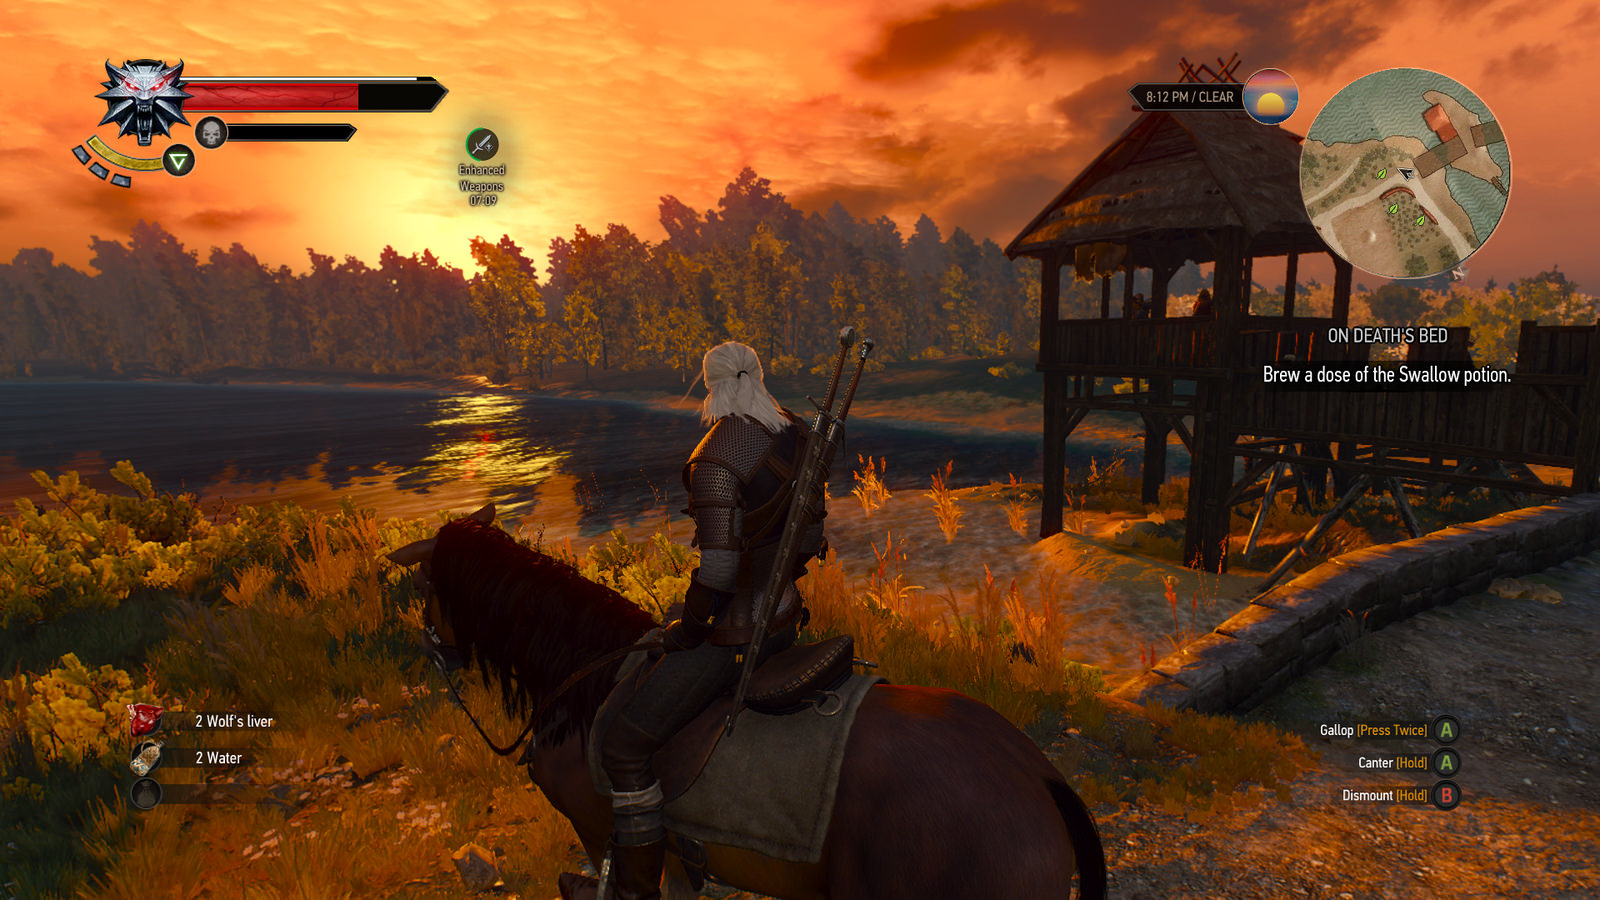 Witcher gameplay screenshot